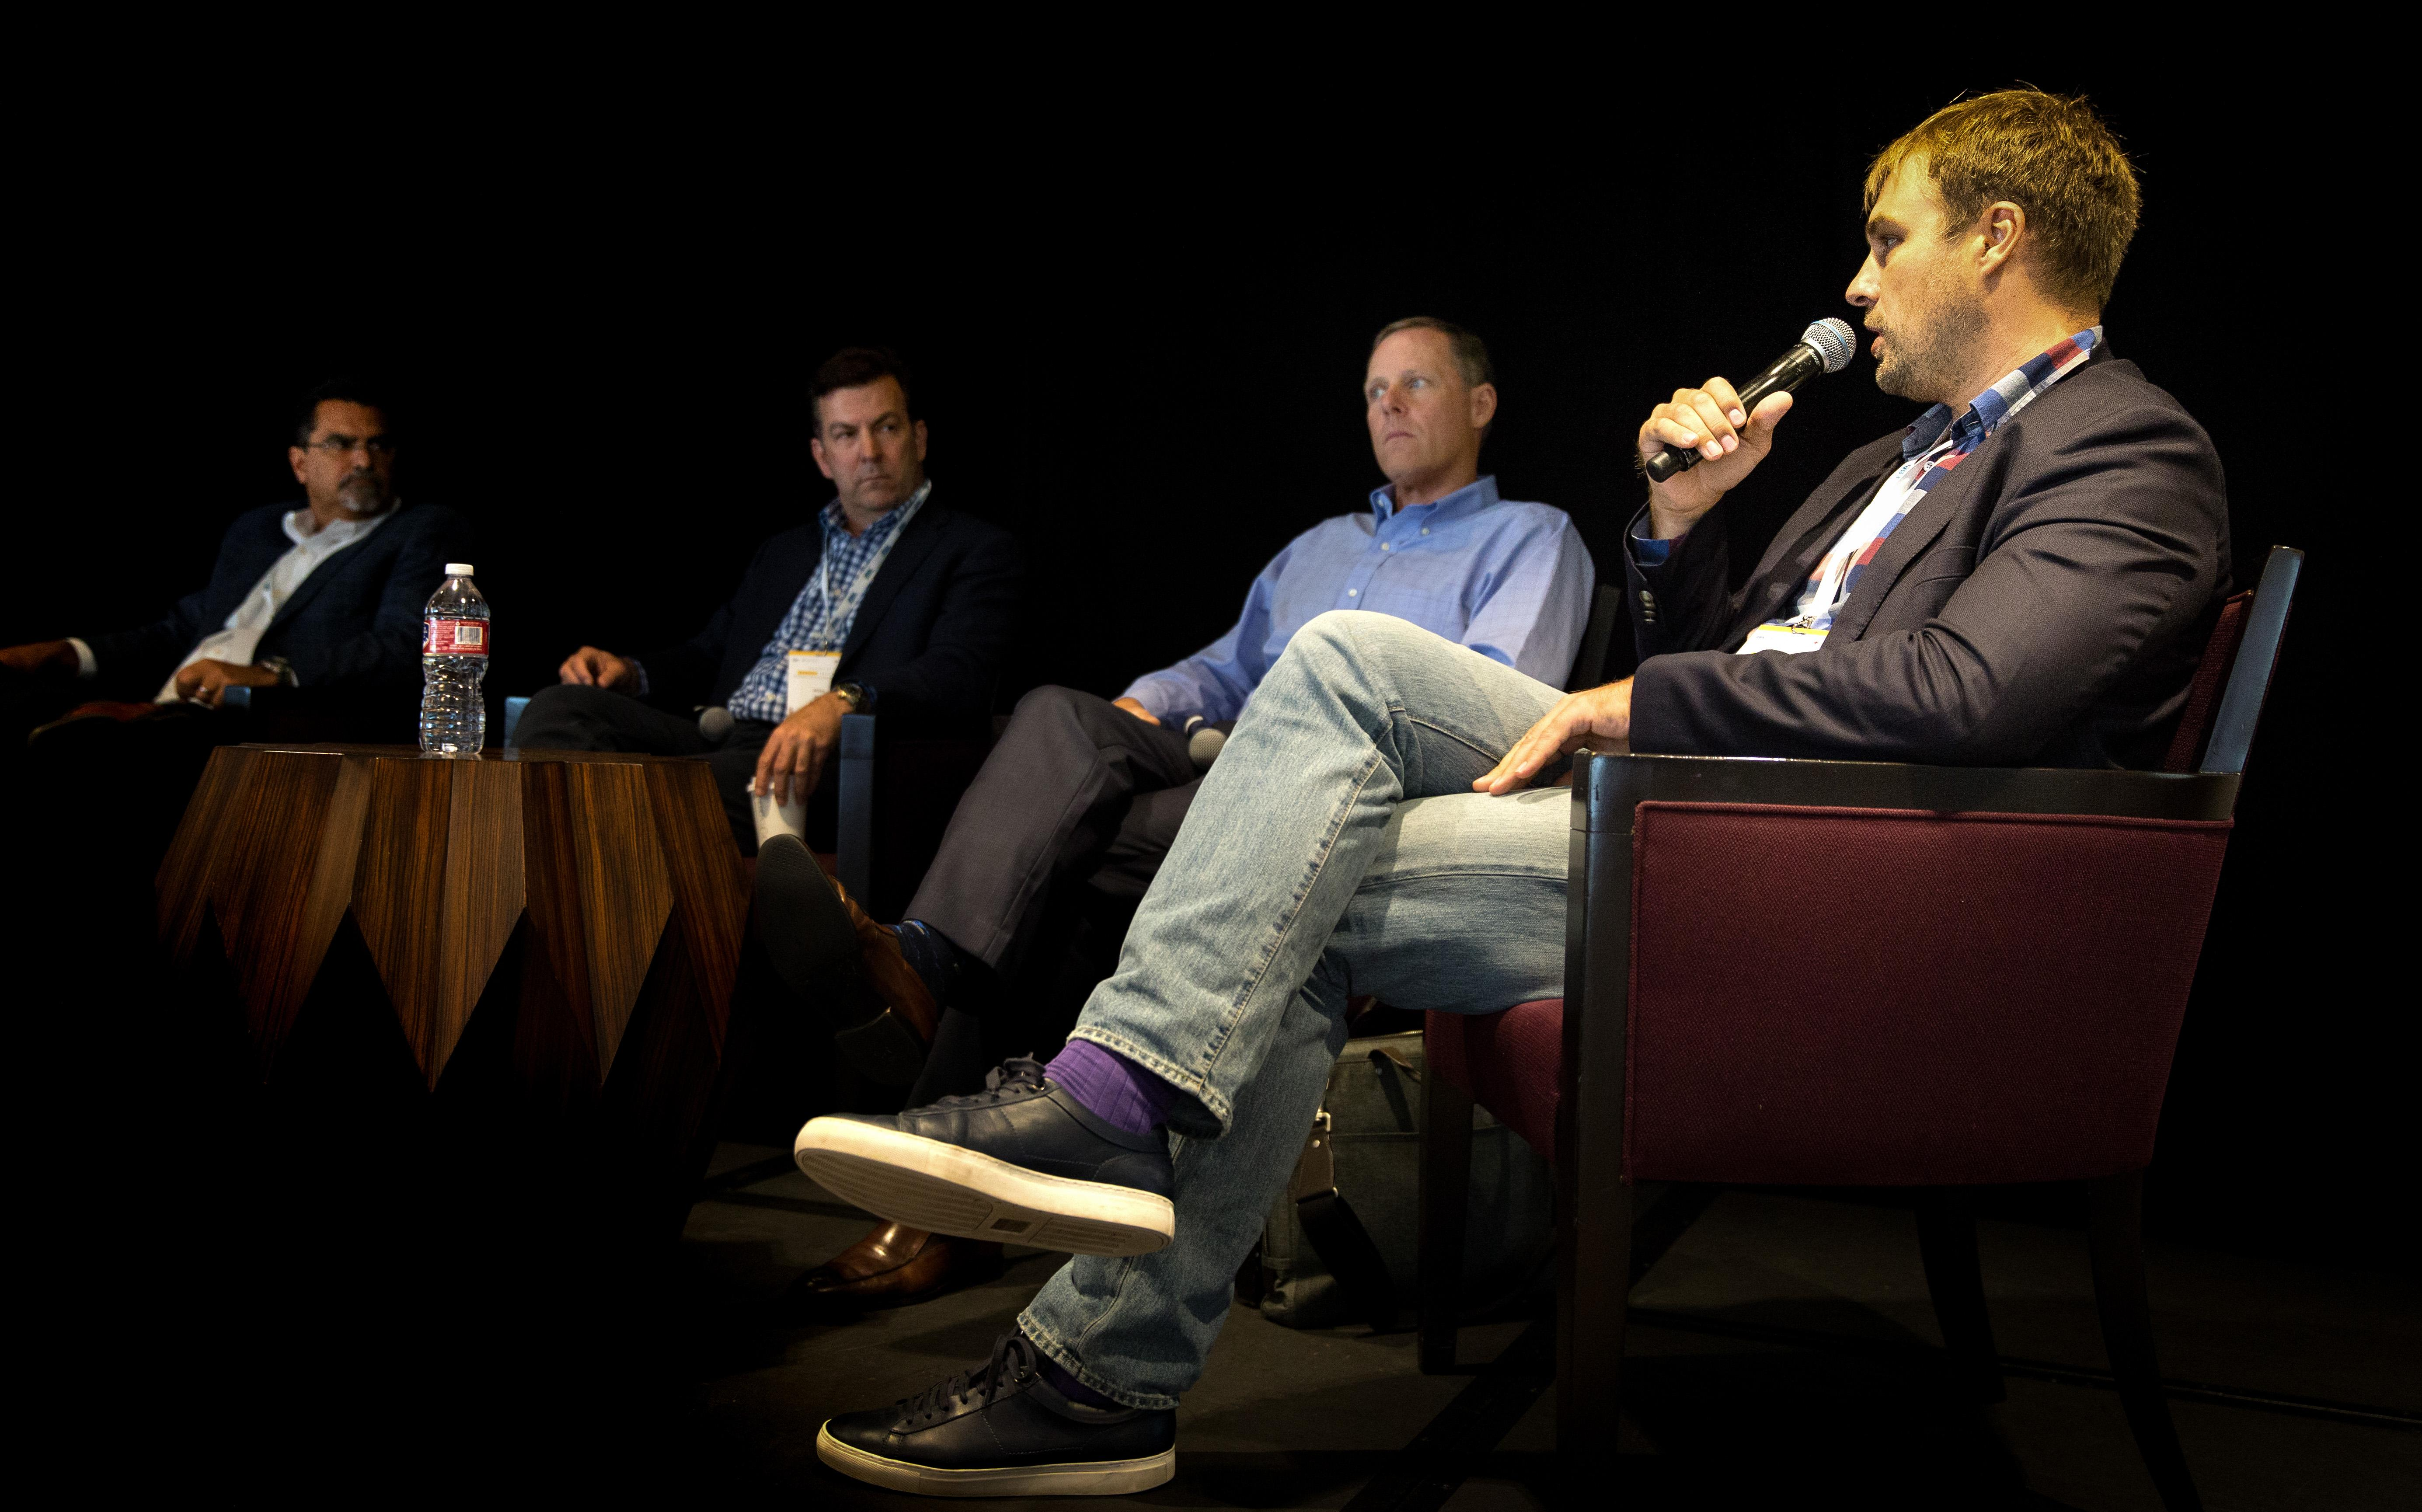 seattletechdays-3 Leading Global Tech Executives Praise Ukraine at EBA's Seattle Tech Days Forum